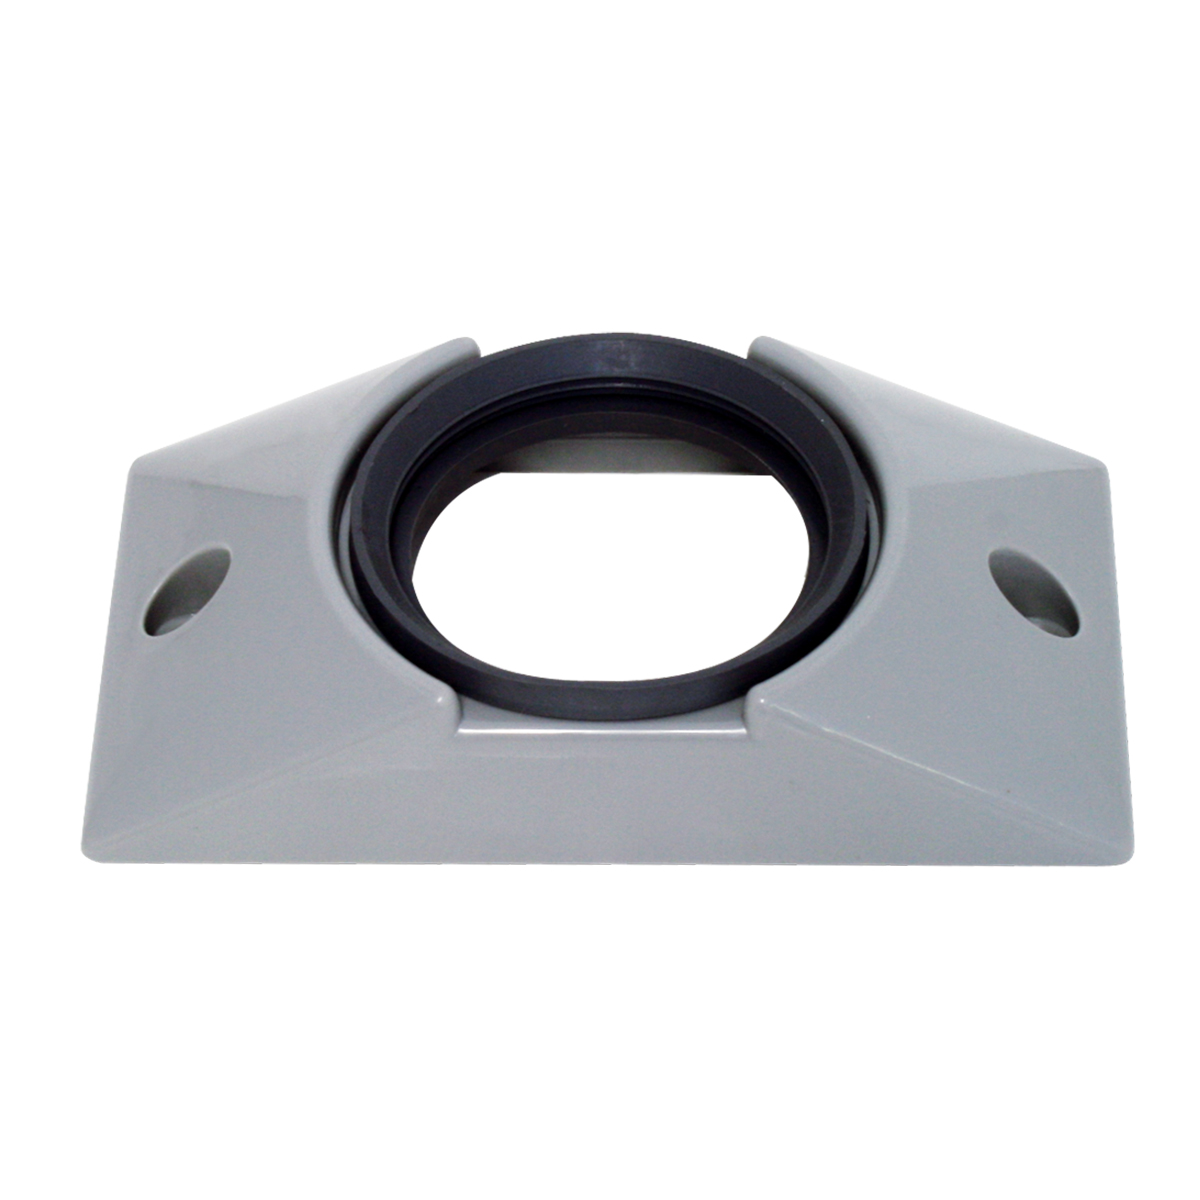 """82627 Gray Plastic Mounting Bracket with Grommet for 2-1/2"""" Round Light"""